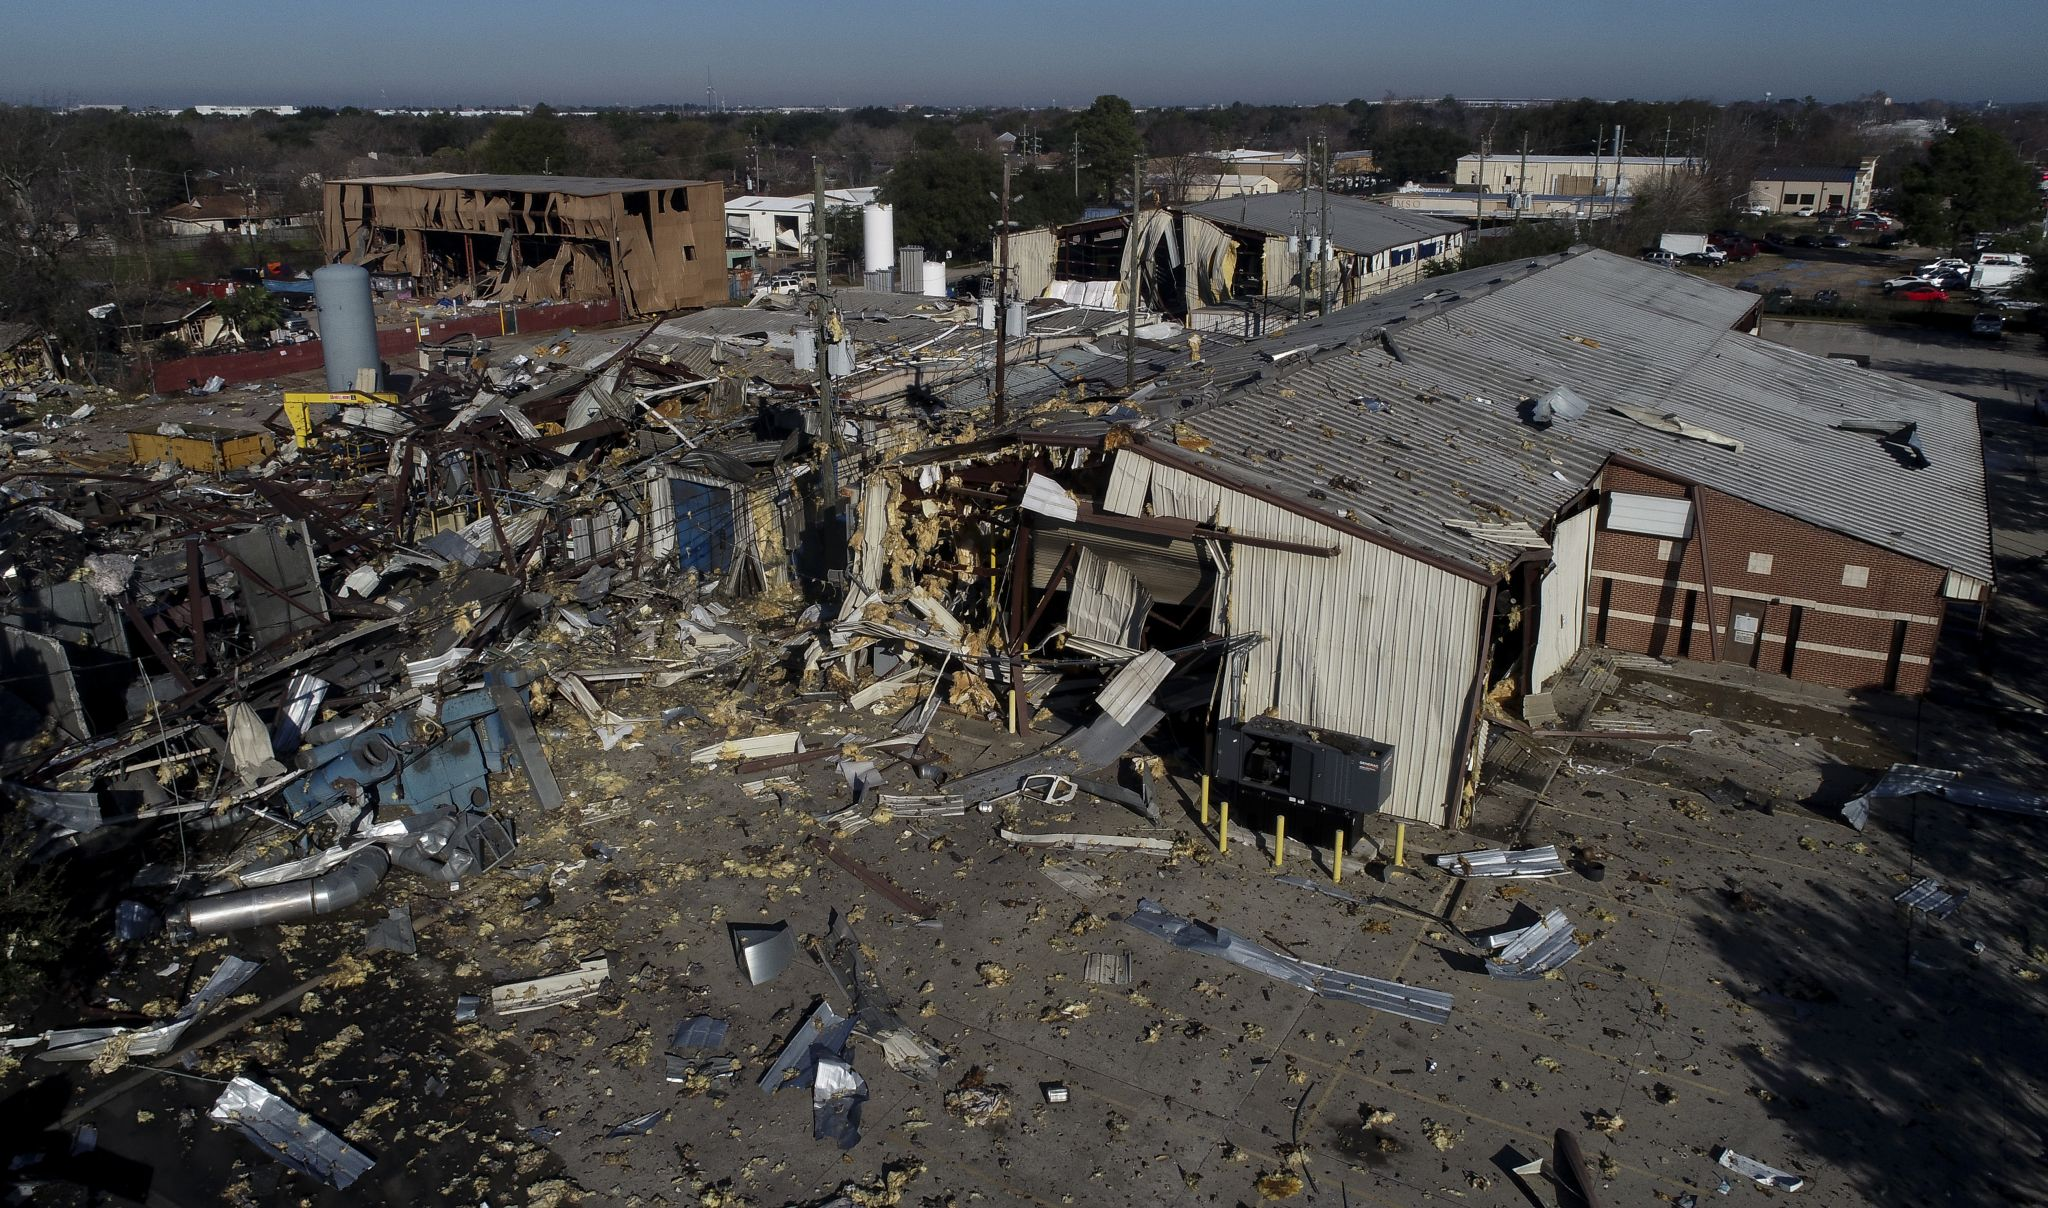 Exclusive drone footage captures the devastation of deadly explosion in west Houston